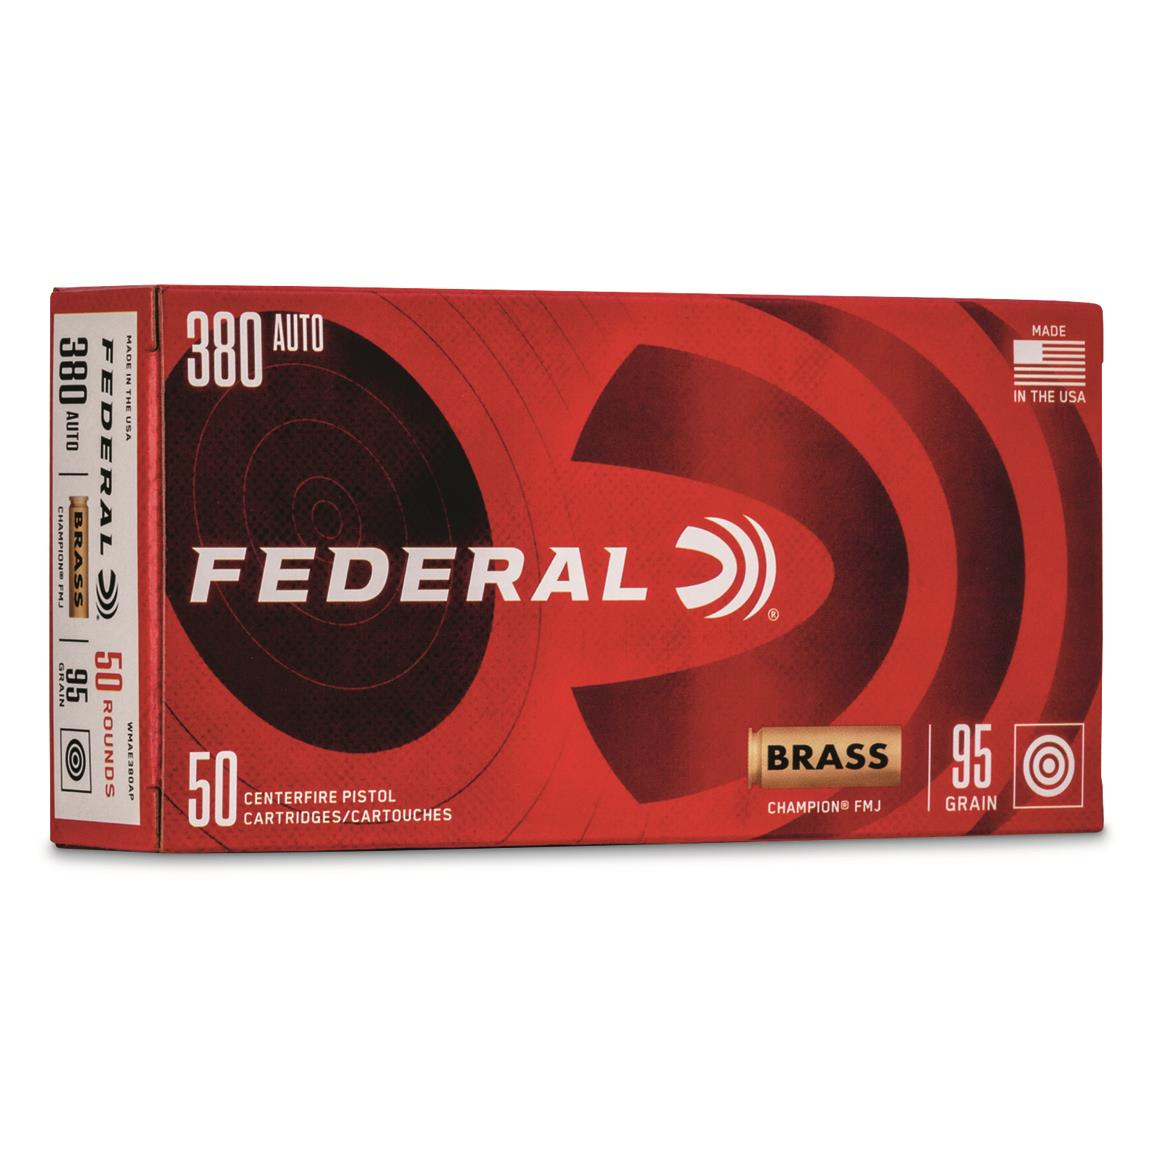 Federal Champion Training, .380 ACP, FMJ, 95 Grain, 50 Rounds